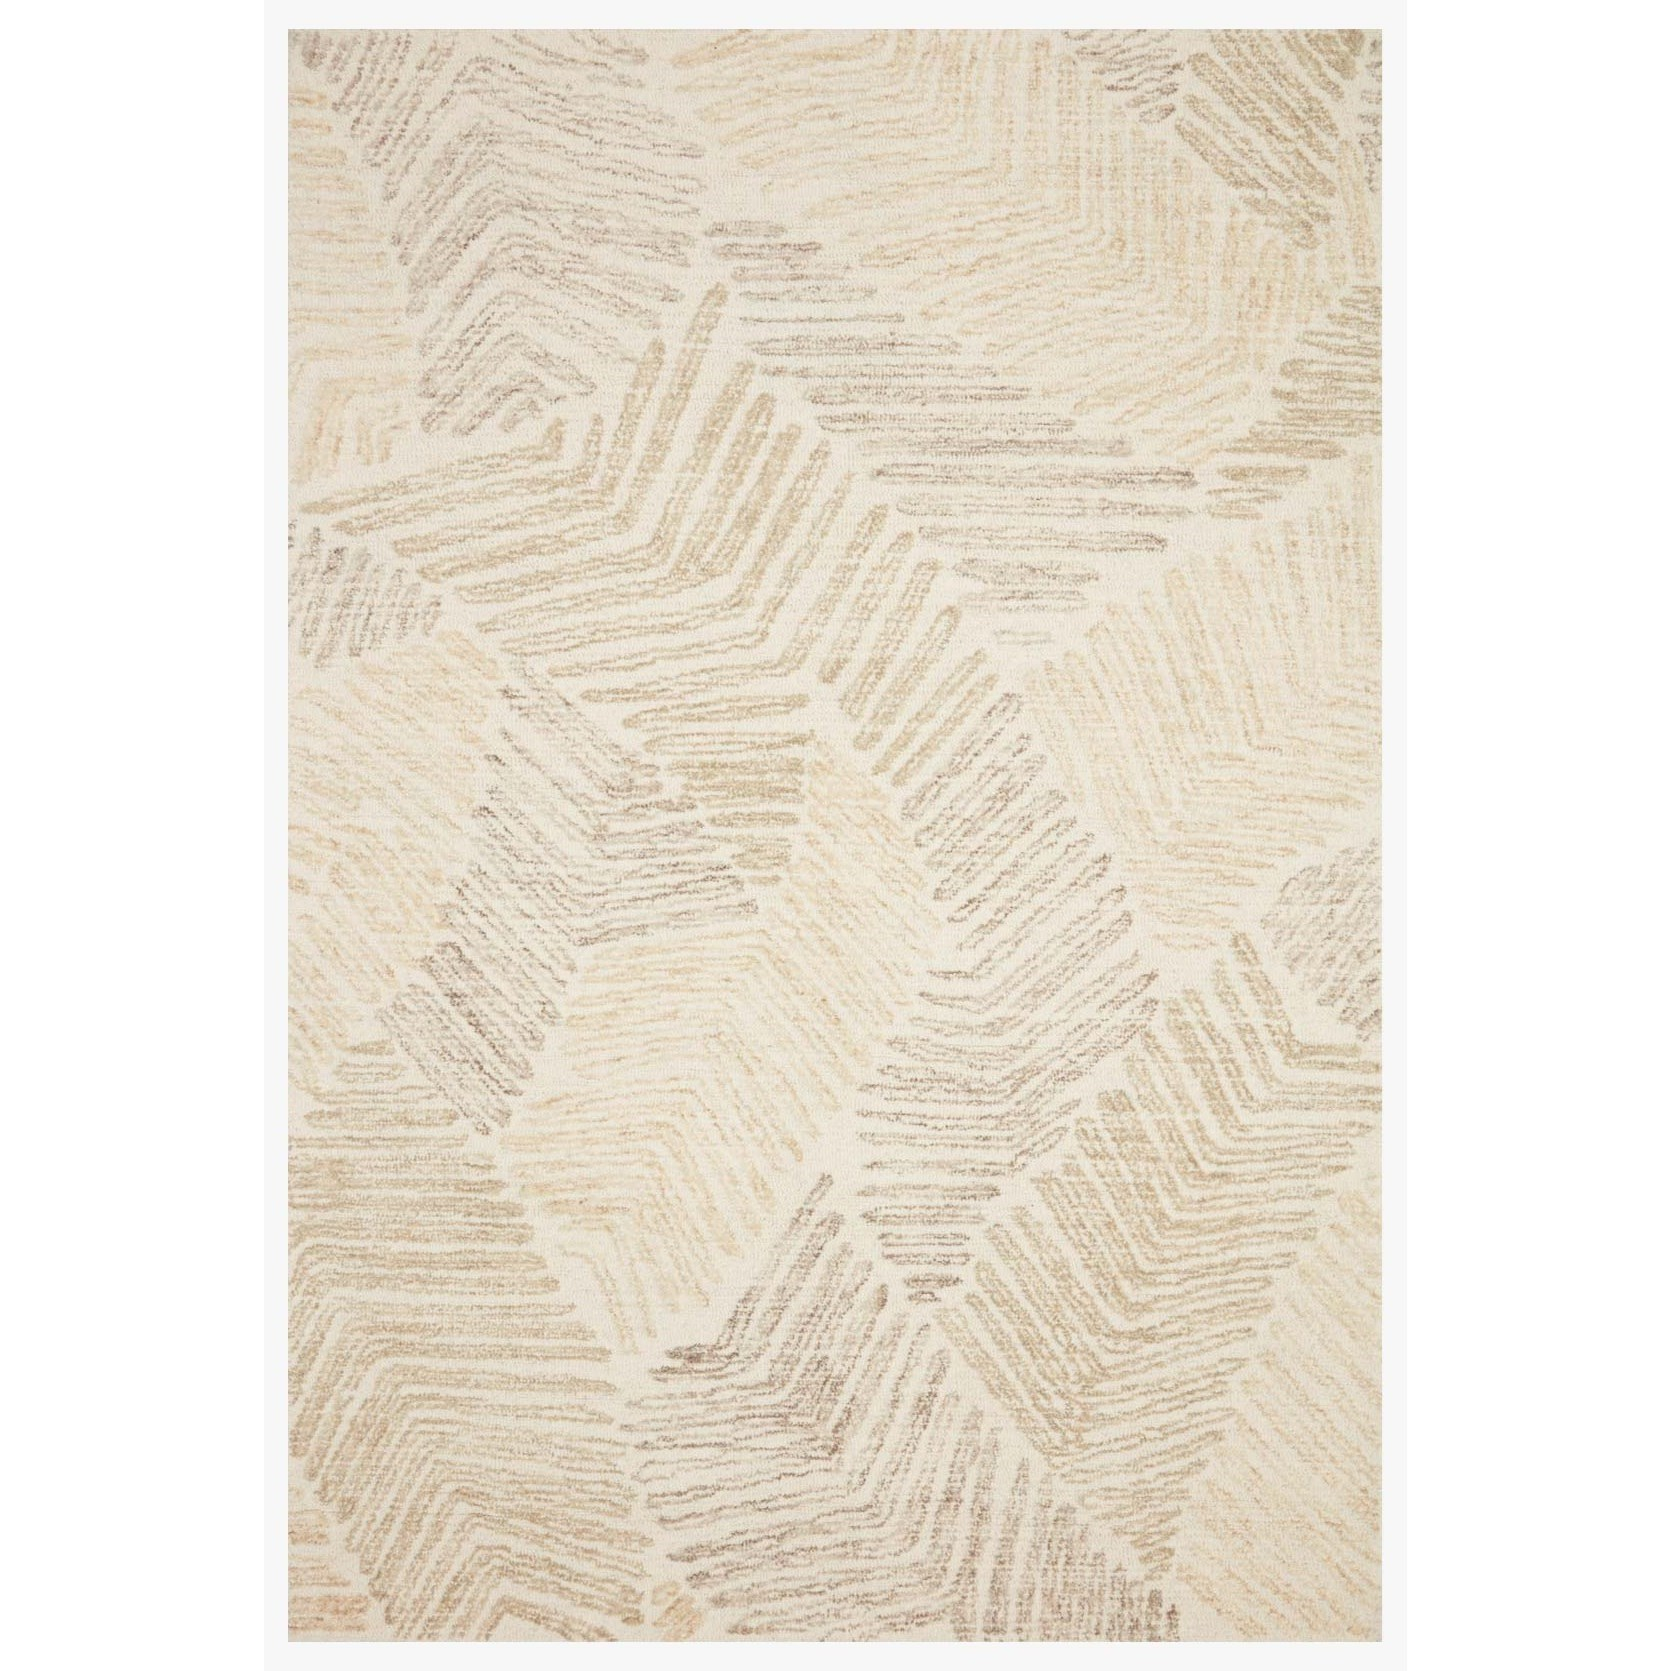 """Milo 8'6"""" x 12' Olive / Natural Rug by Loloi Rugs at Virginia Furniture Market"""